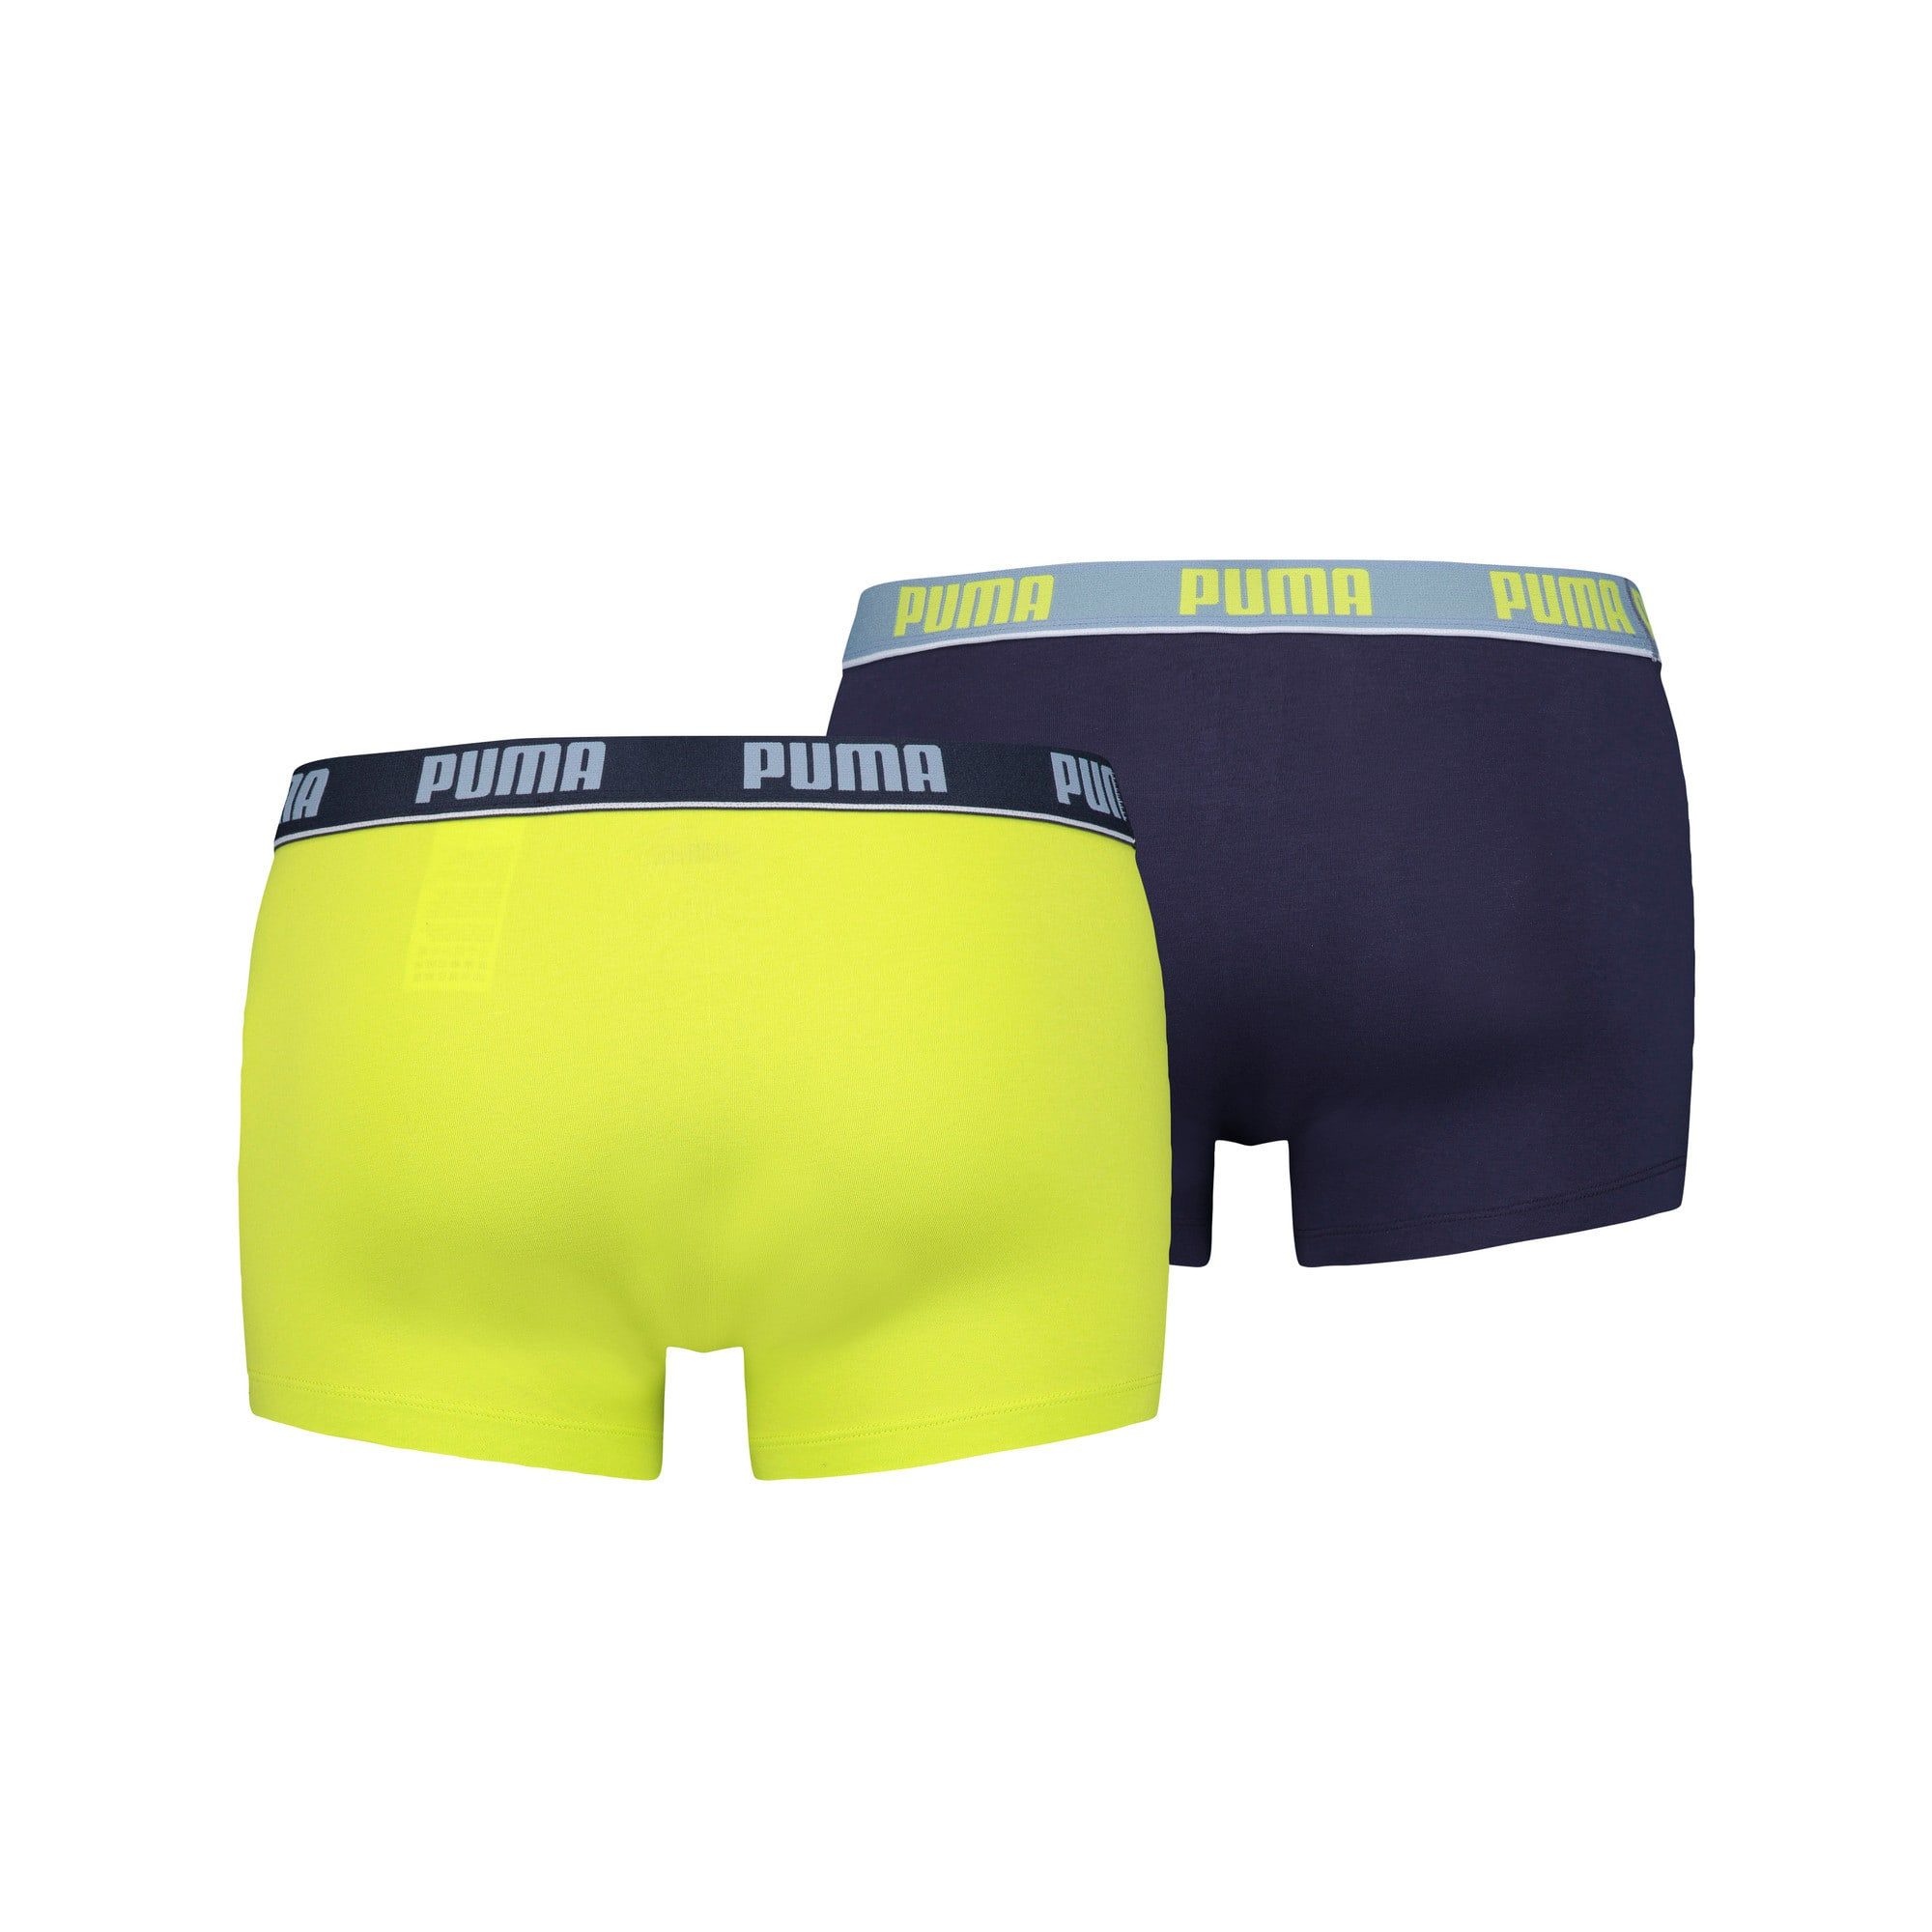 Thumbnail 5 van 2 basic boxershorts, blue / lime, medium